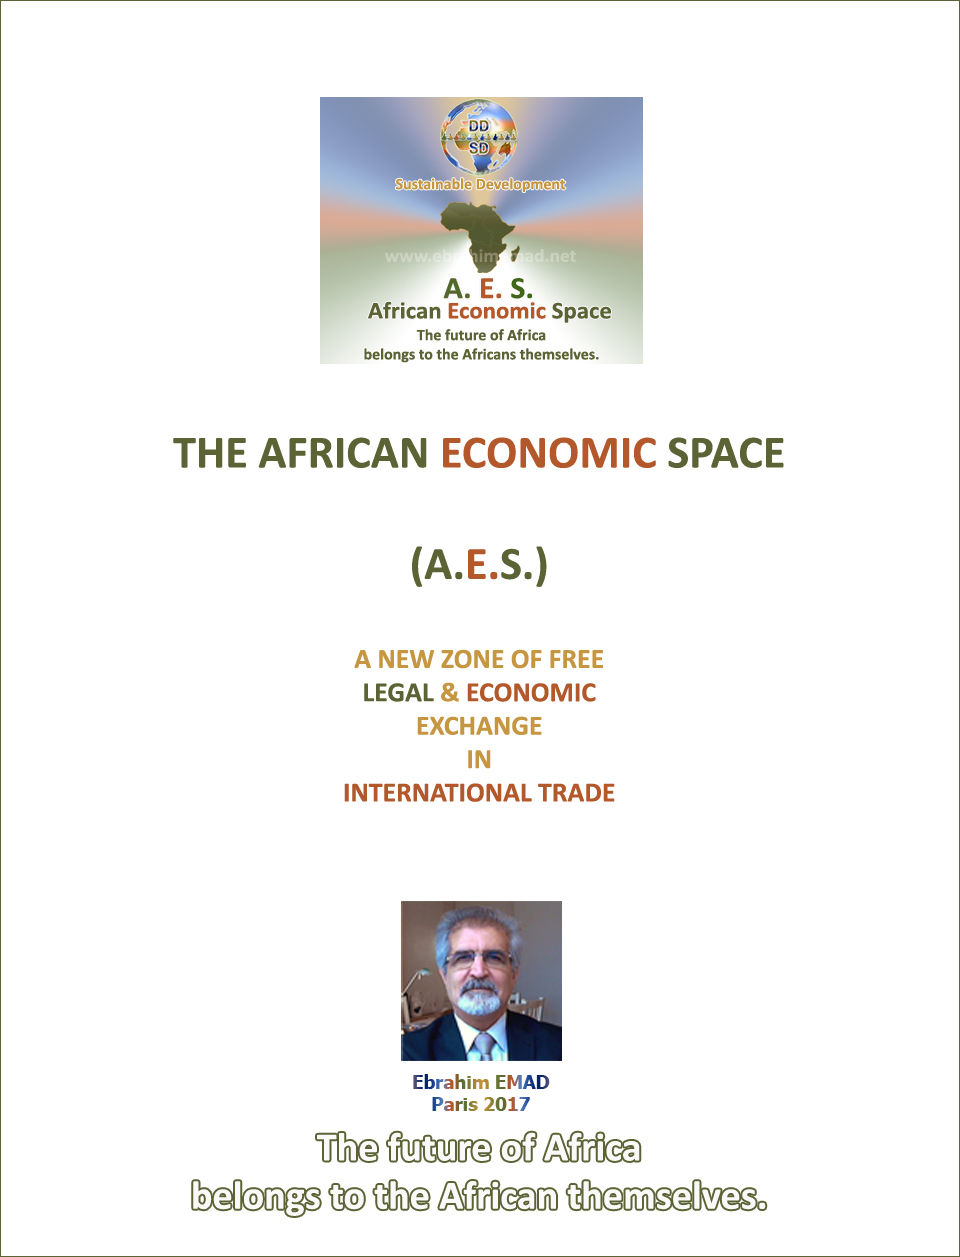 The AFRICAN ECONOMIC SPACE